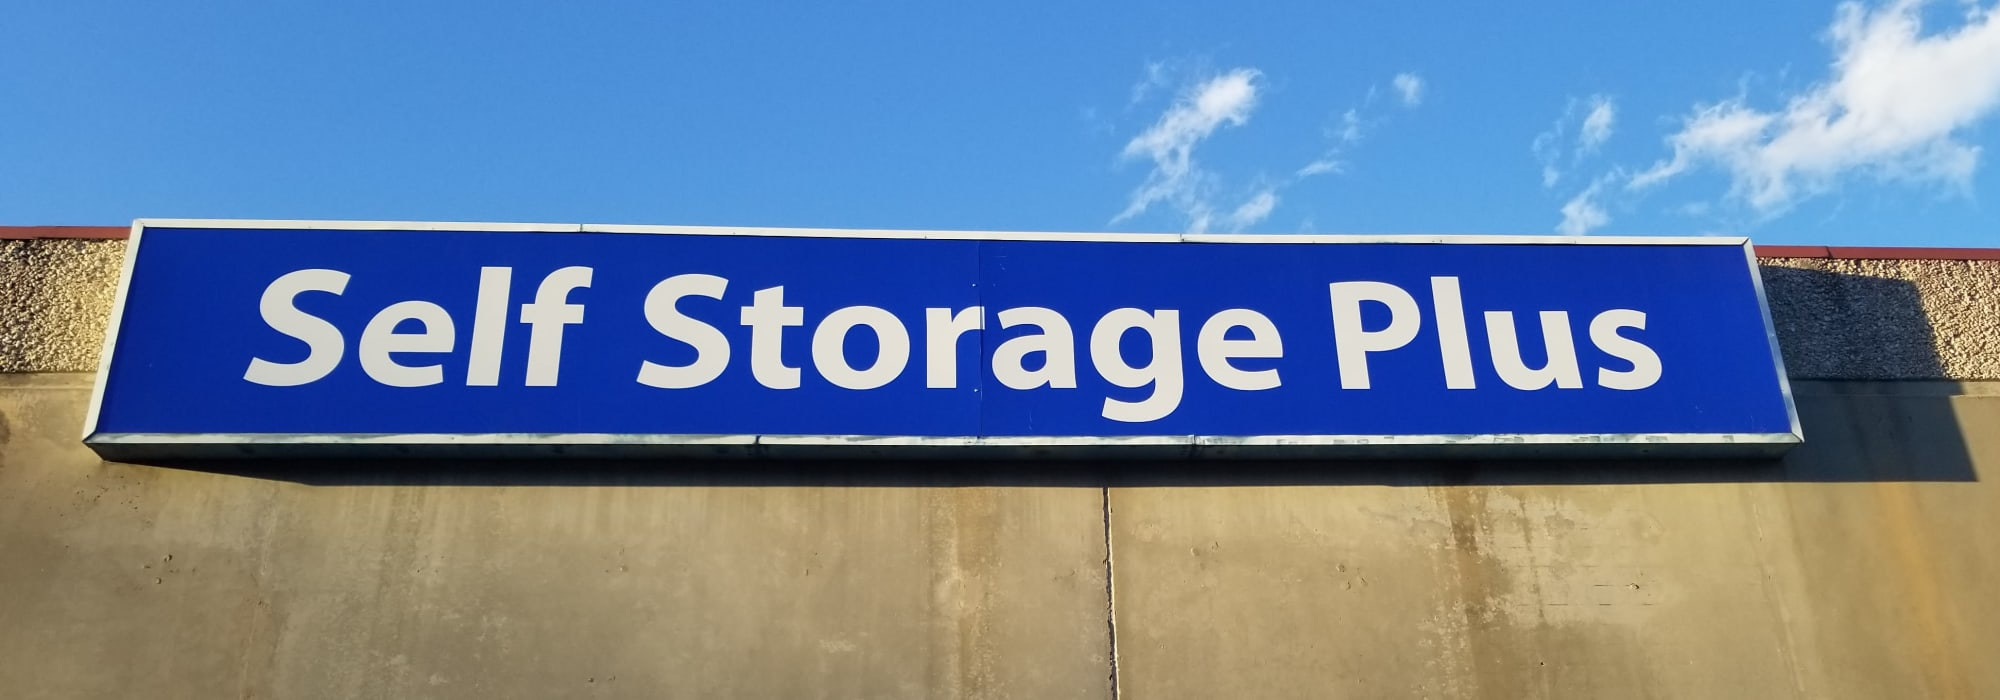 Self storage in Self Storage Plus in Alexandria, Virginia